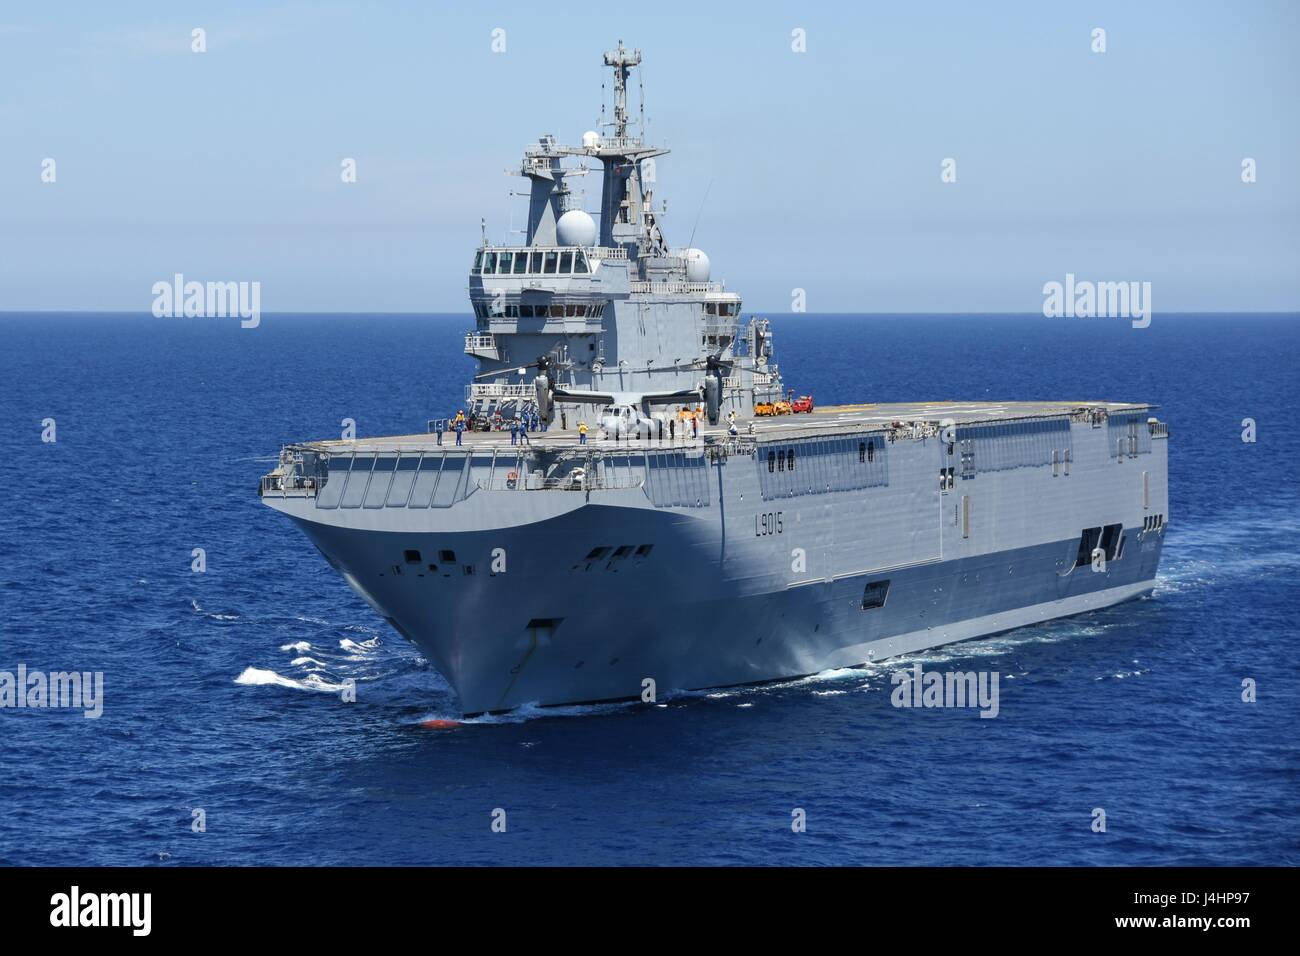 the french navy mistral class amphibious assault ship fs dixmude steams underway august 6